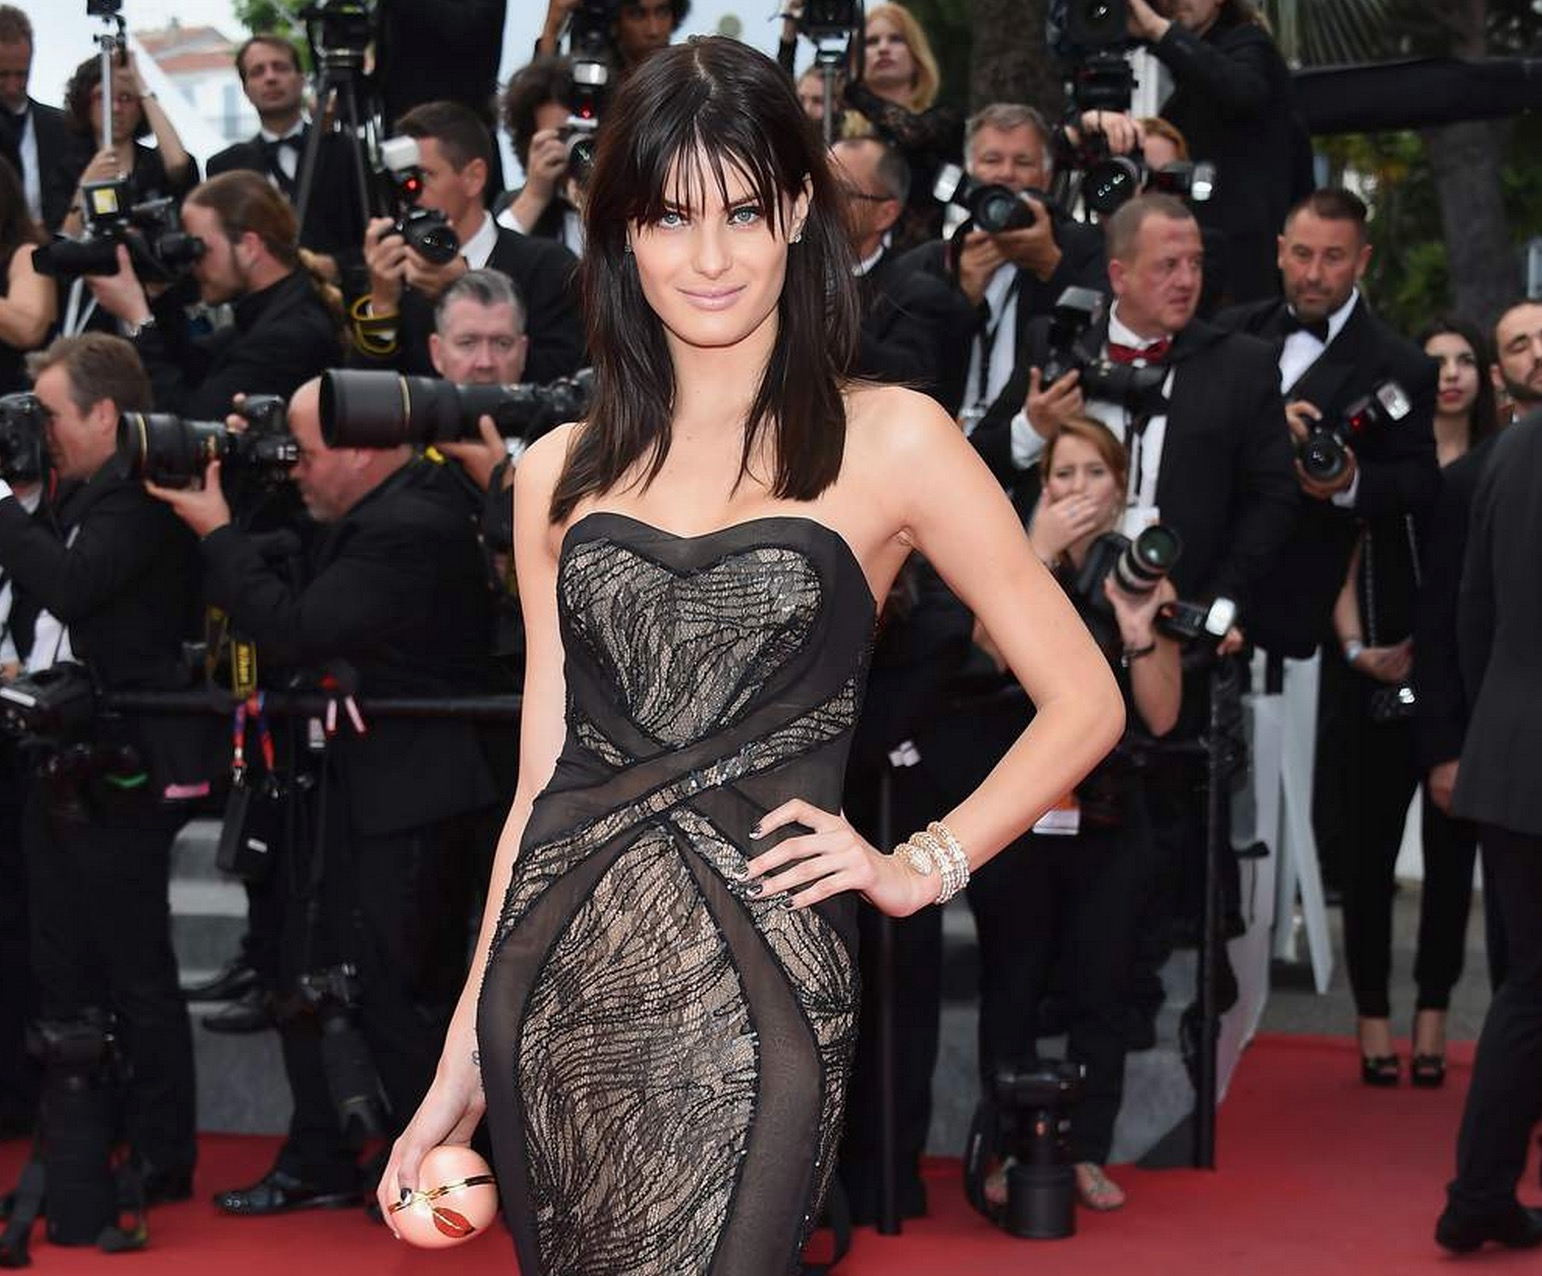 isabelli-Fontana-decollete-cannes-2015